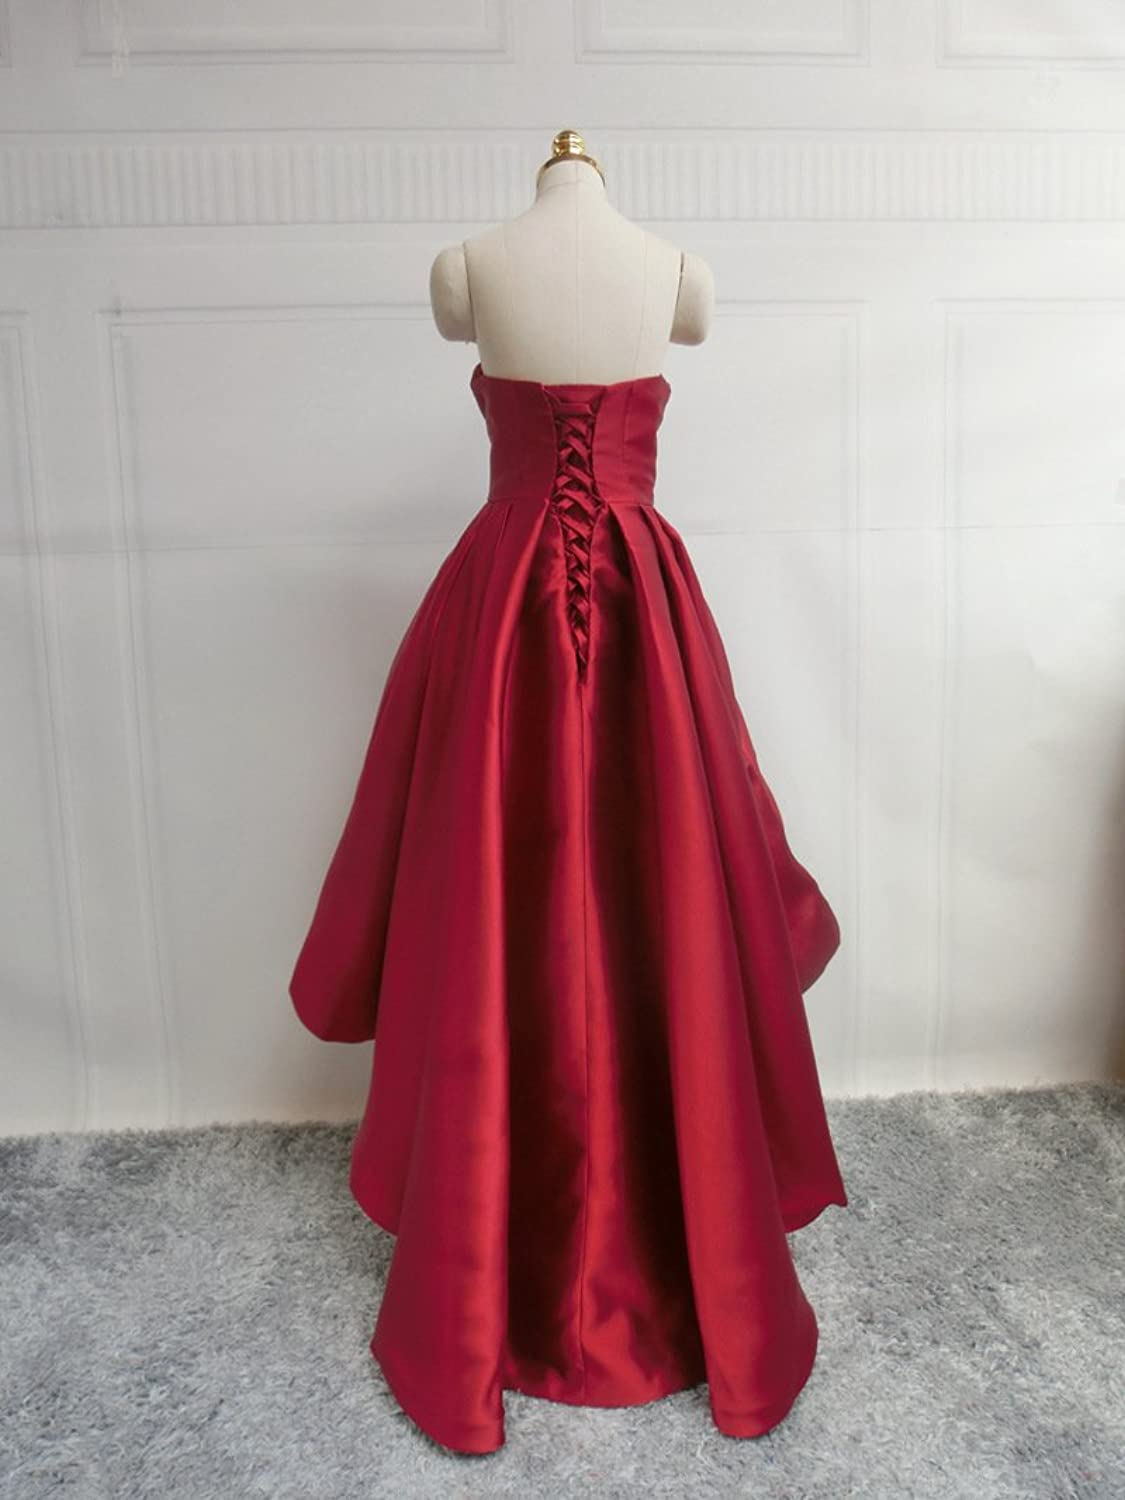 Amazon.com: Sweetheart Neckline Short and Long Puffy Skirt Prom Dresses: Clothing